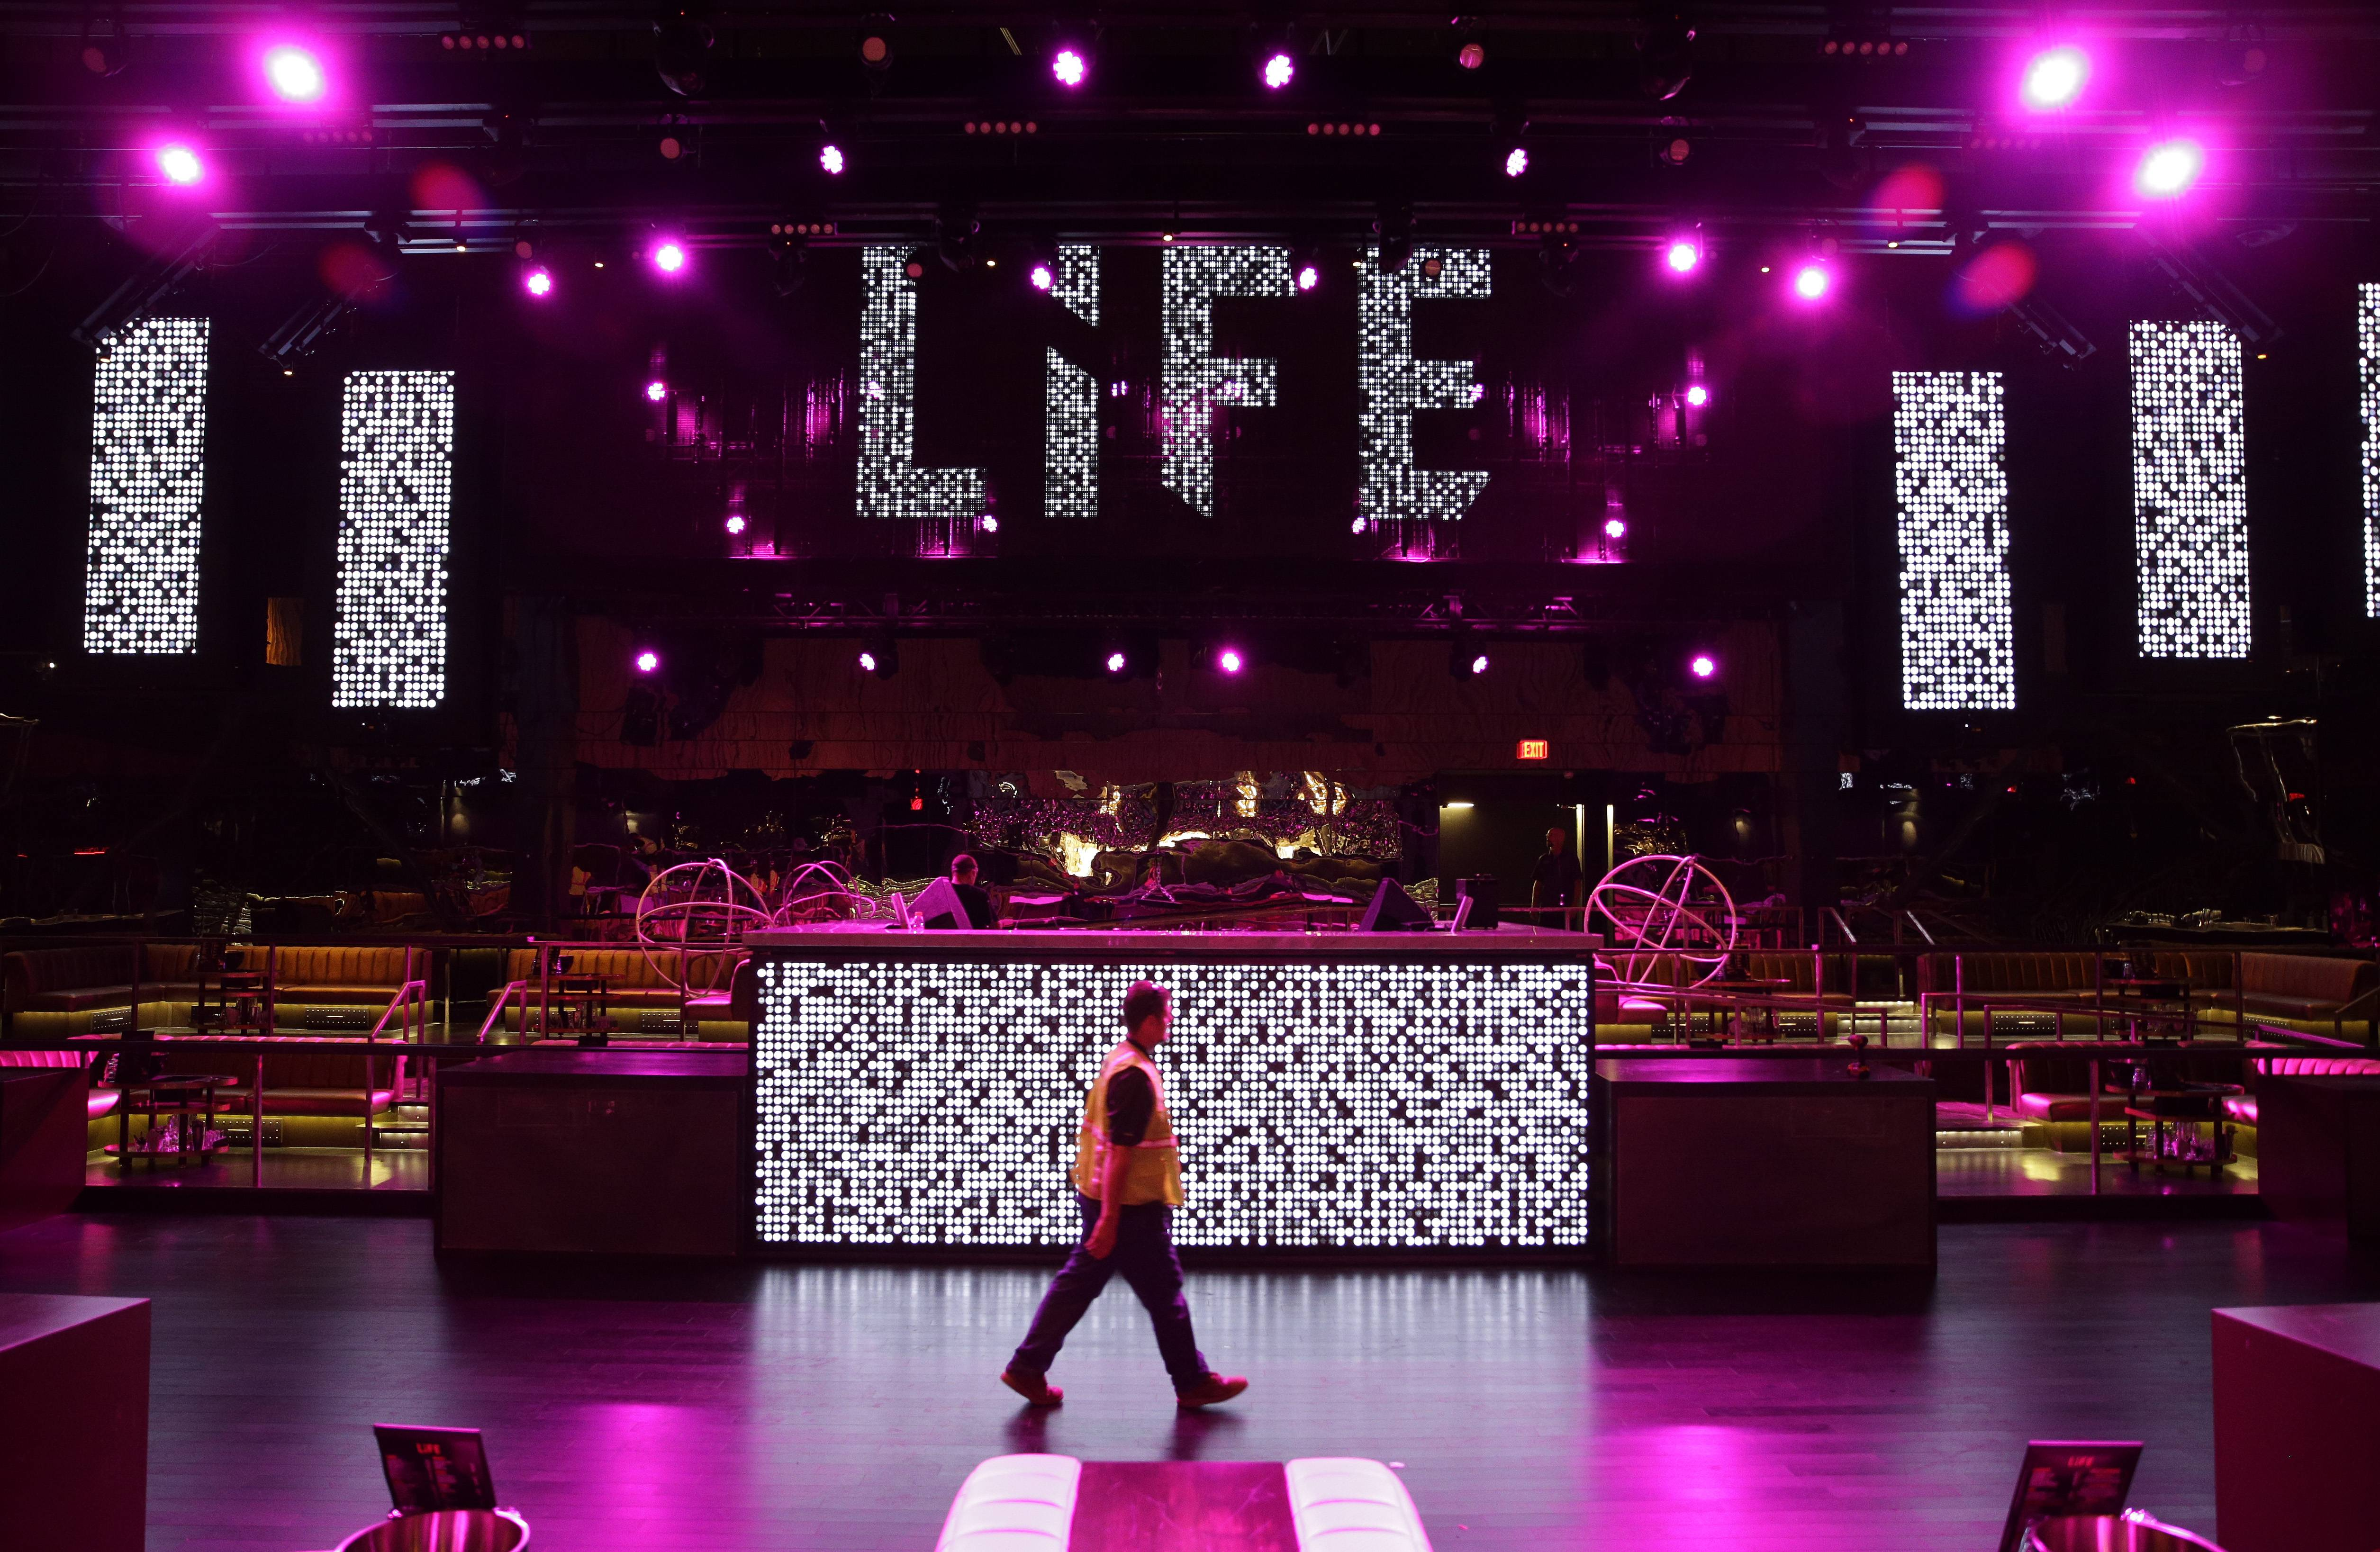 The Life Nightclub, along with many upscale restaurants, is hope to attract visitors to the new SLS Las Vegas in Las Vegas. The hotel and casino, formally known as the Sahara, went through extensive renovations before opening Aug. 23.